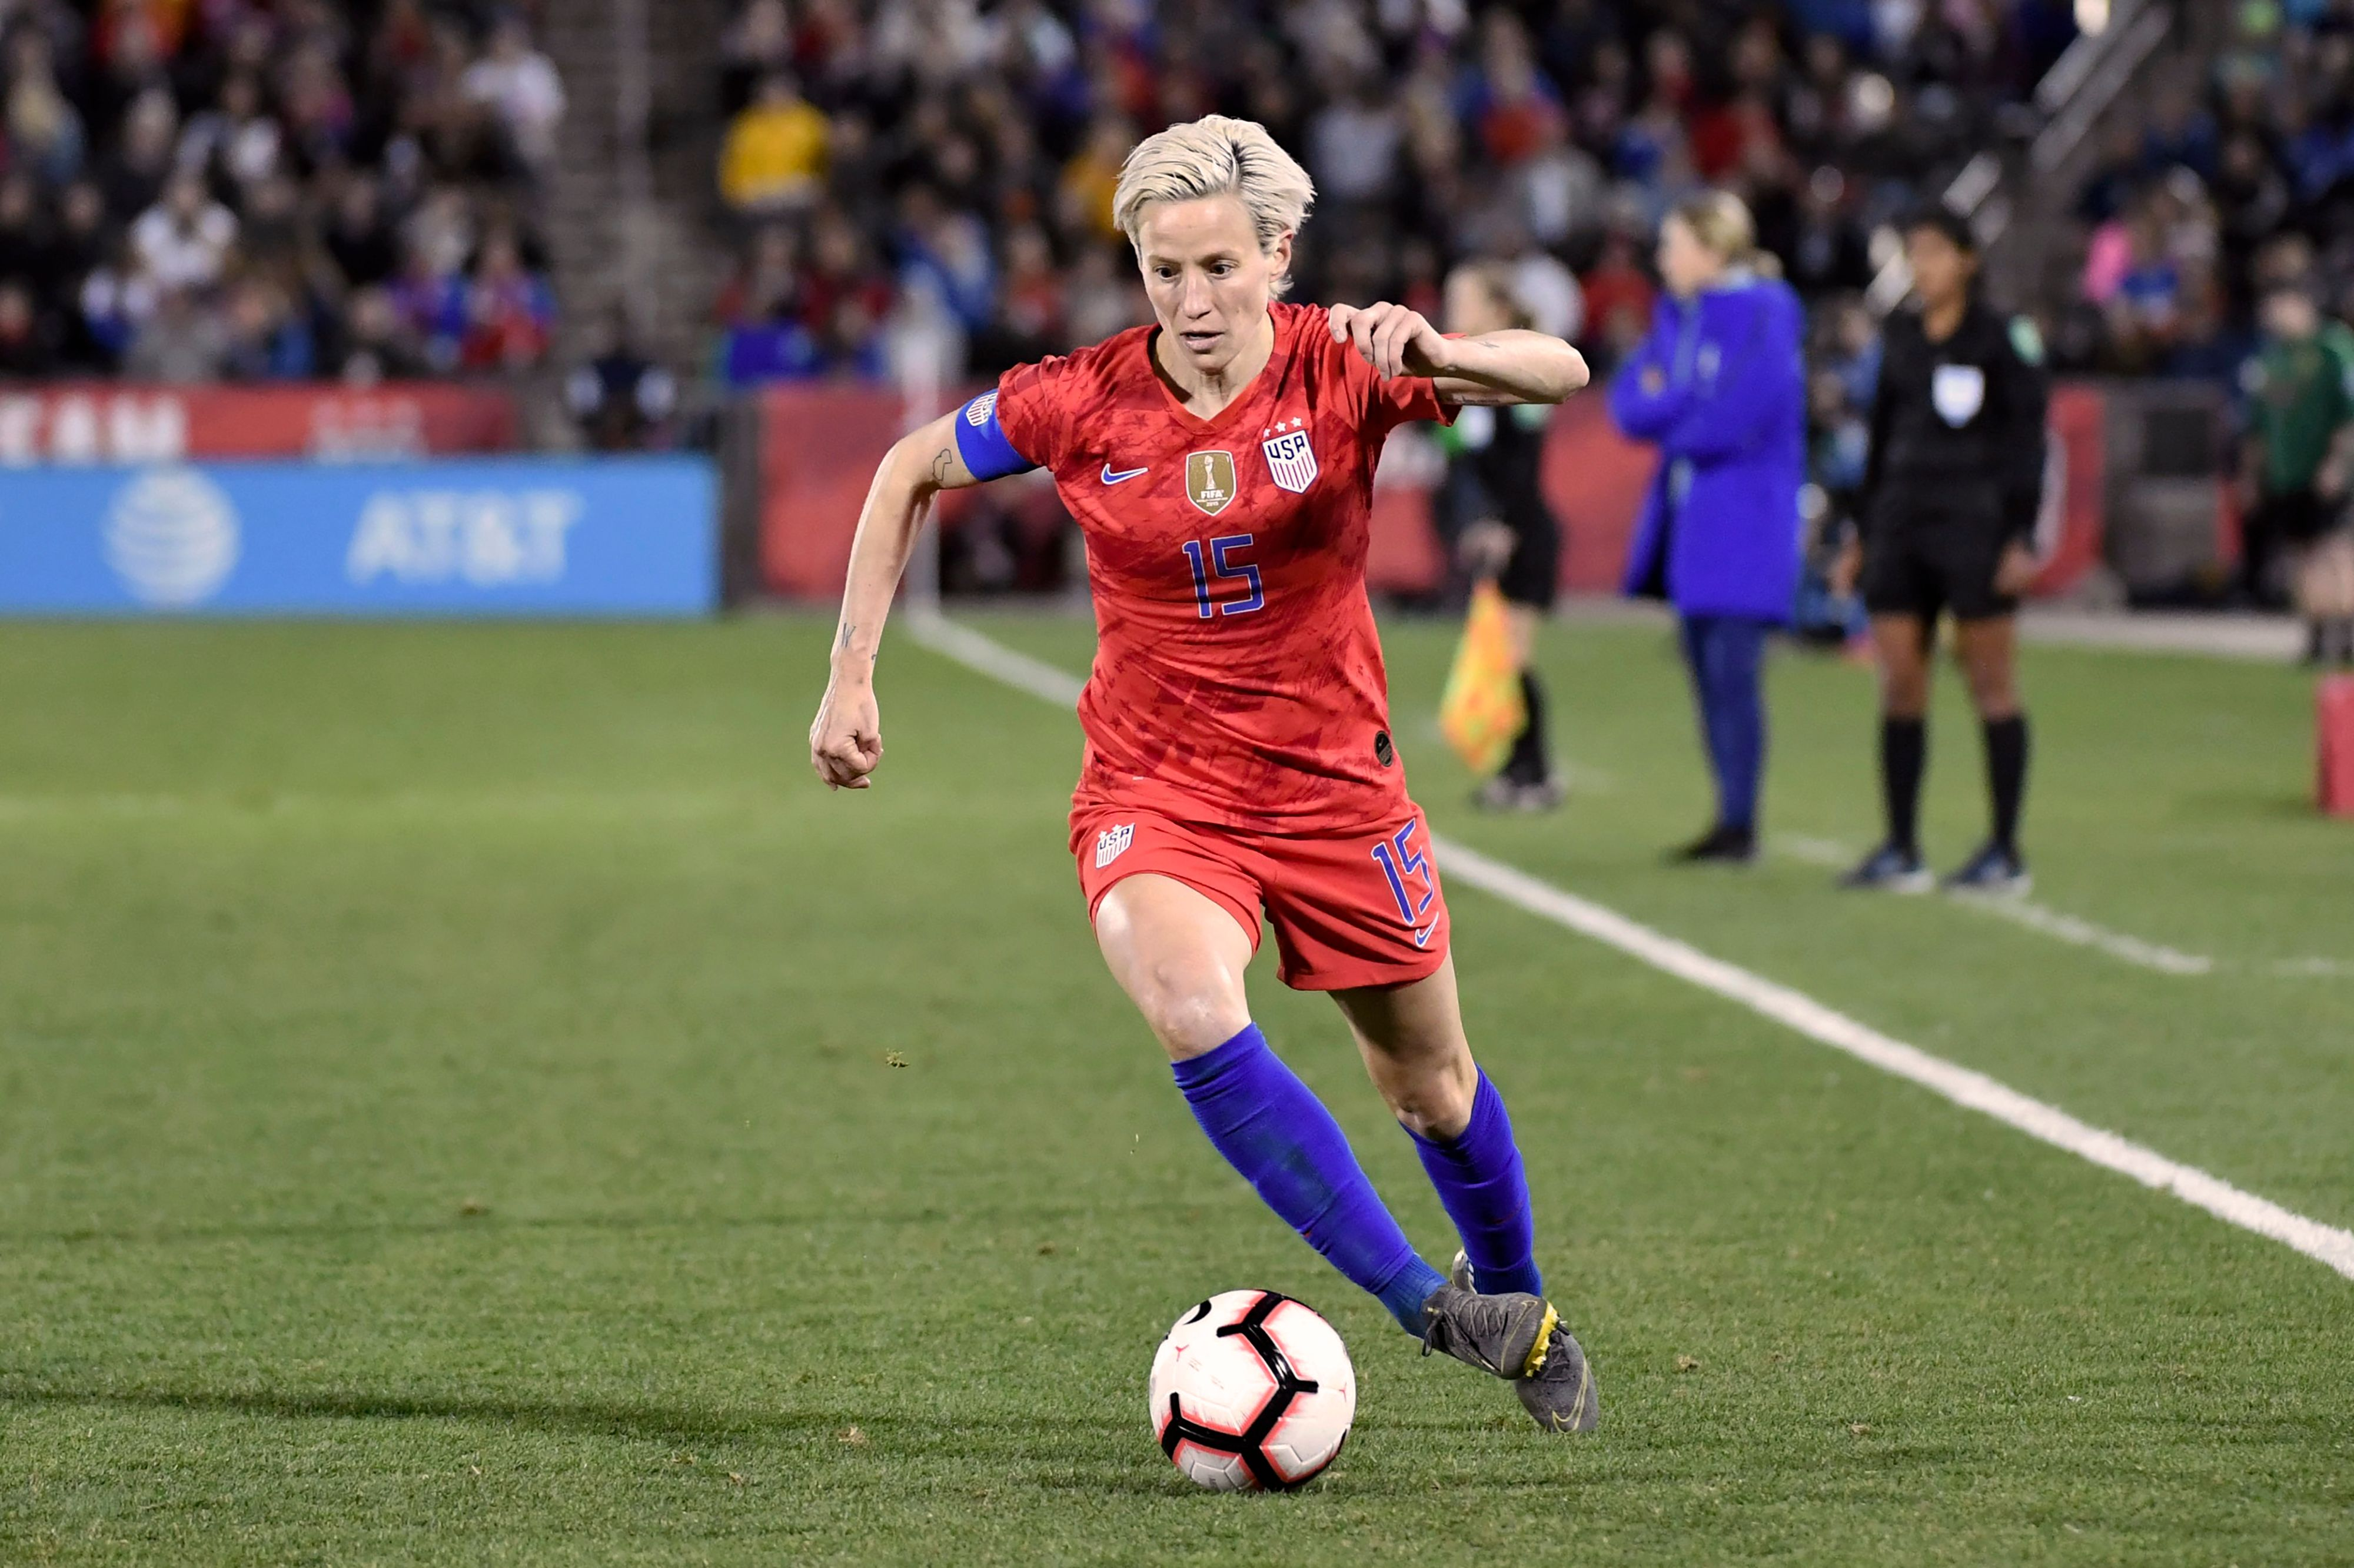 USWNT roster for Women's World Cup 2019: Ride or die - The